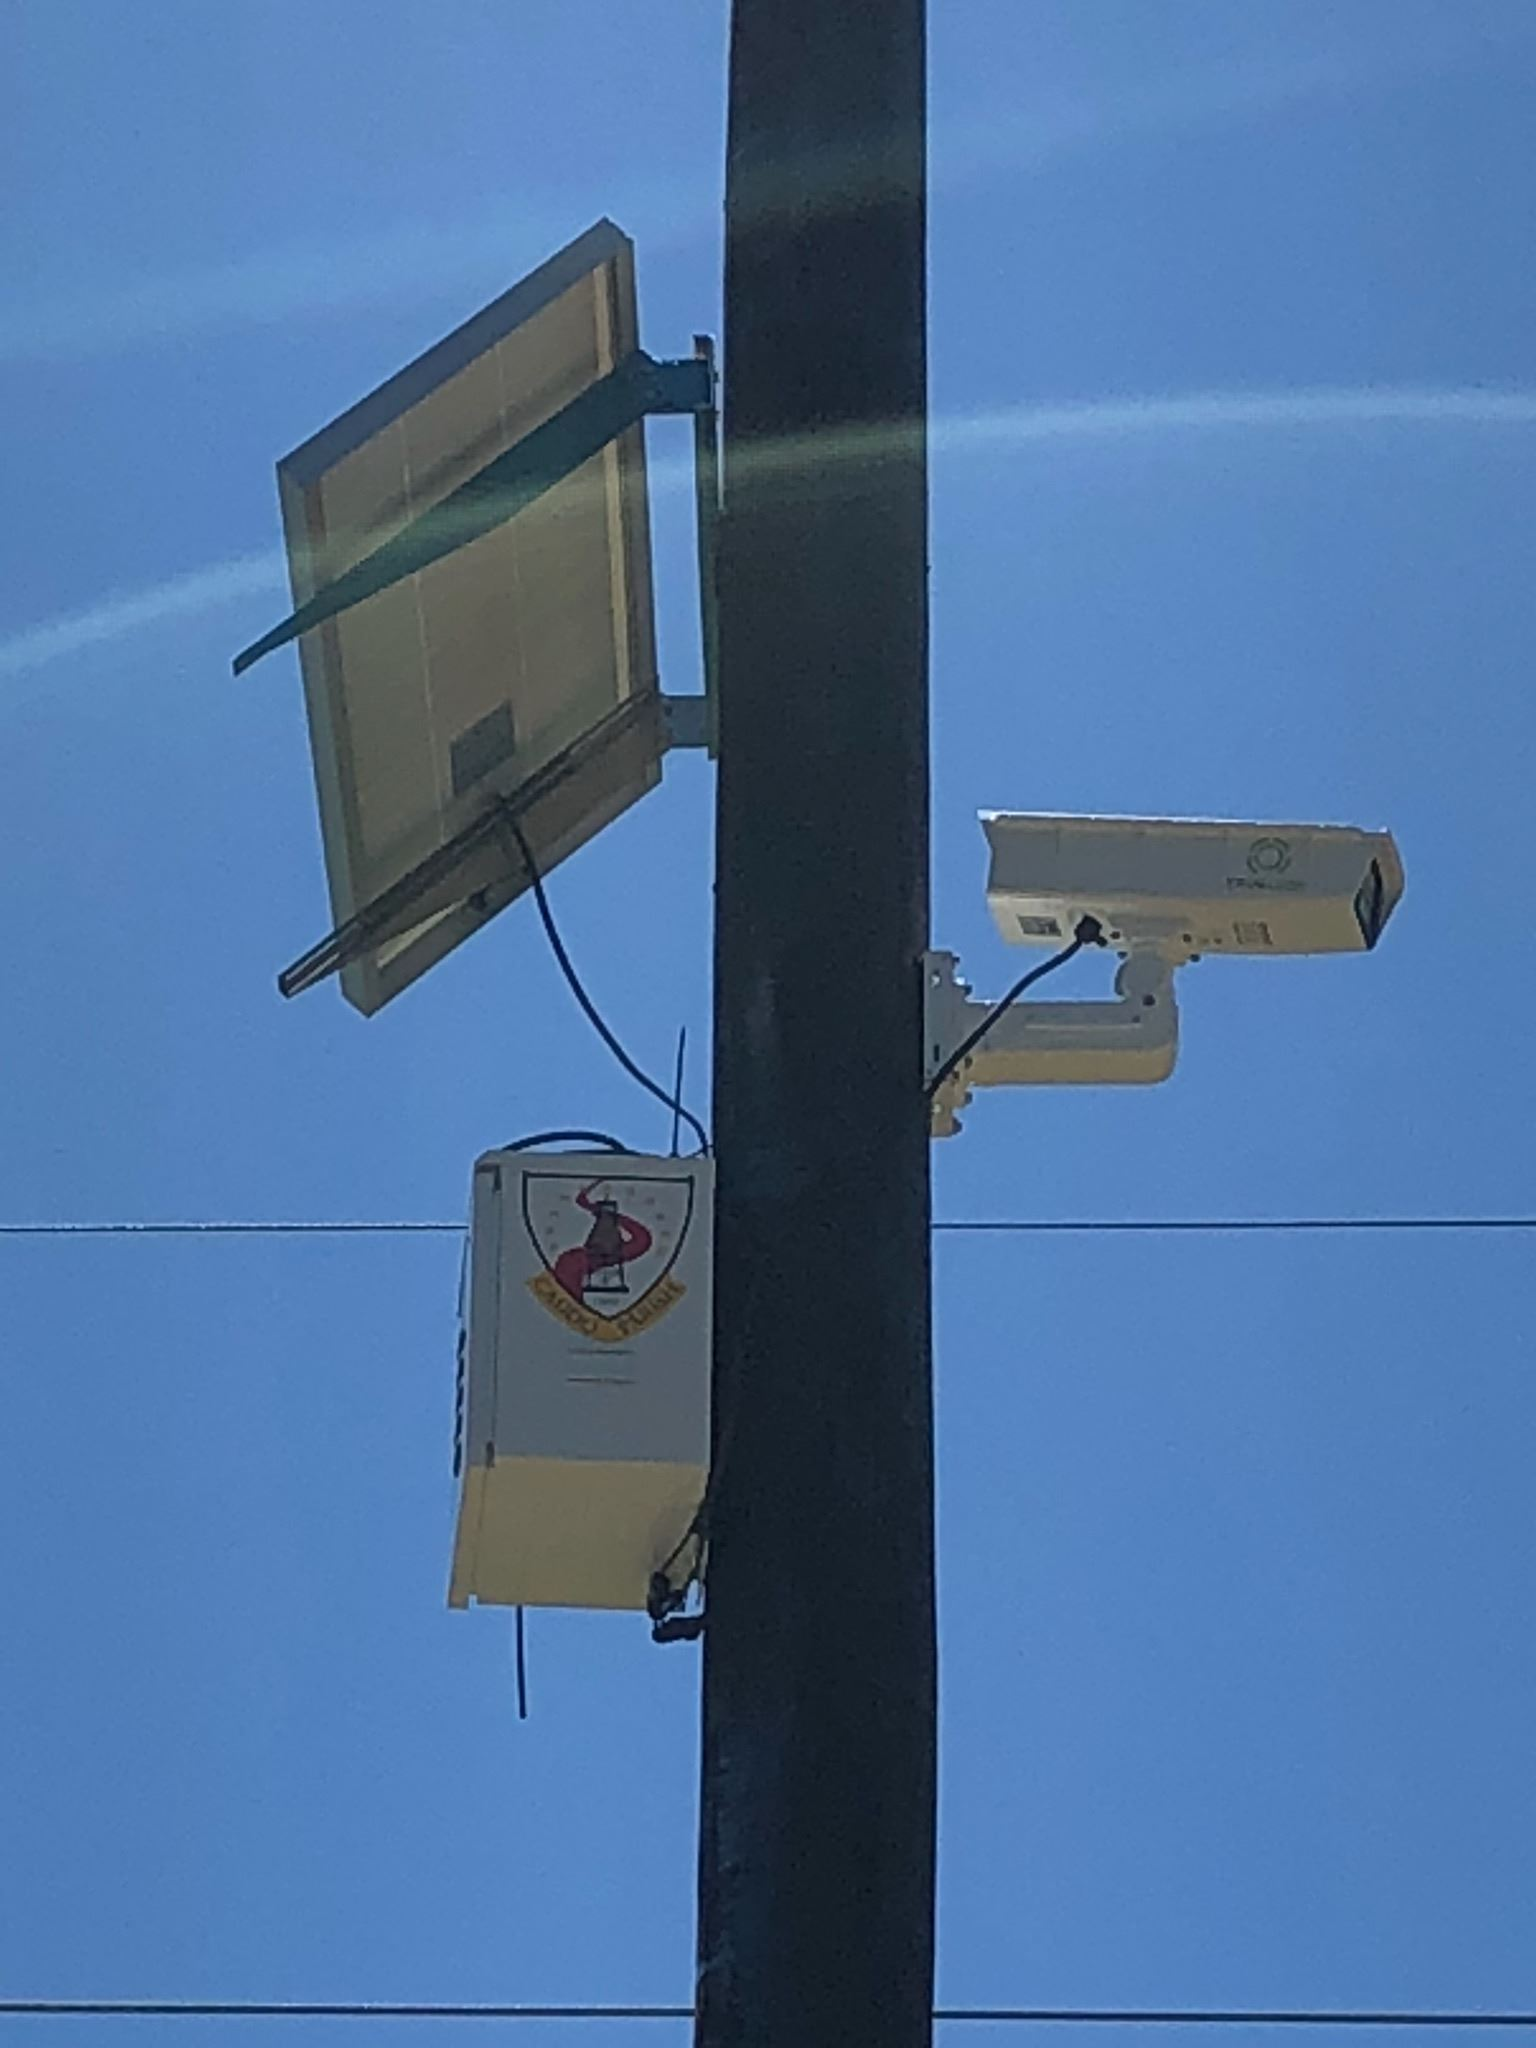 Video camera on telephone pole